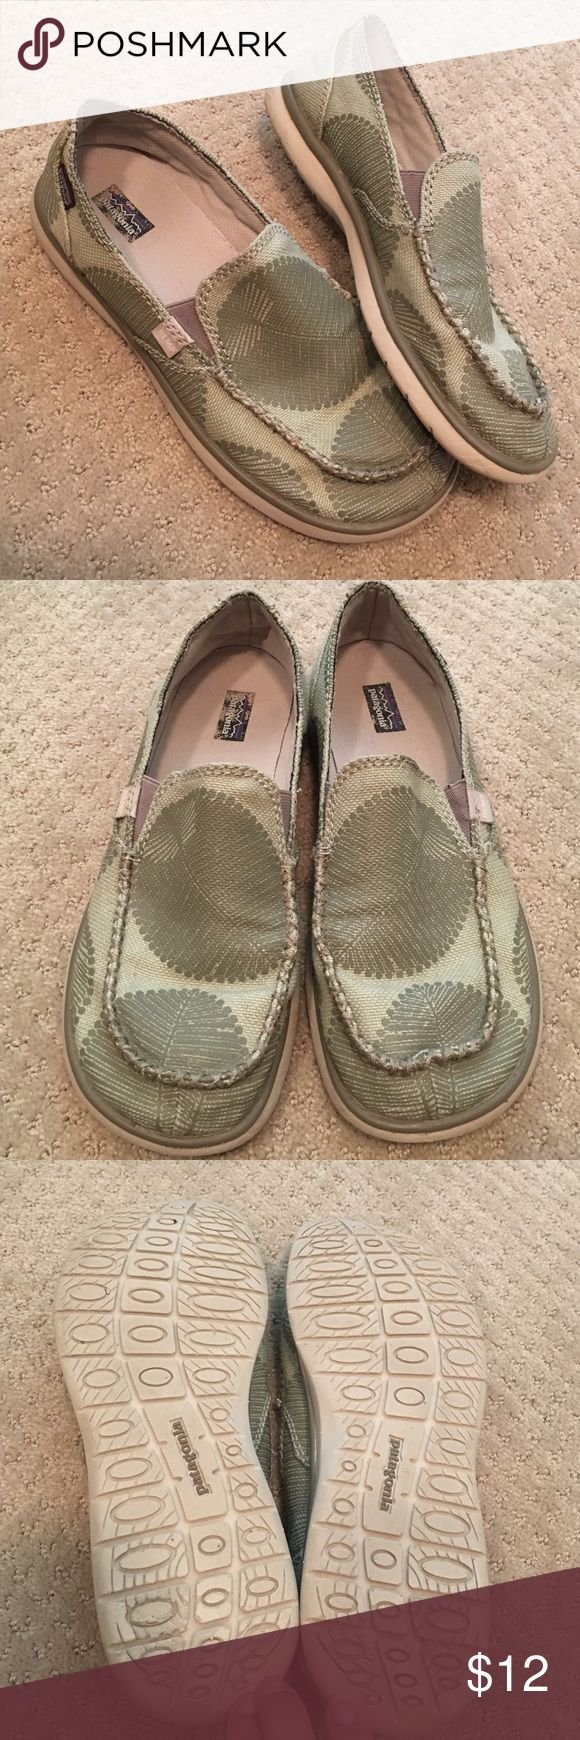 Patagonia women's casual shoe. Excellent condition Surf style casual shoe. Super comfy especially for a wide foot, but these run big. They say size 9 but they are more like a 9.5. Great condition! Patagonia Shoes Flats & Loafers